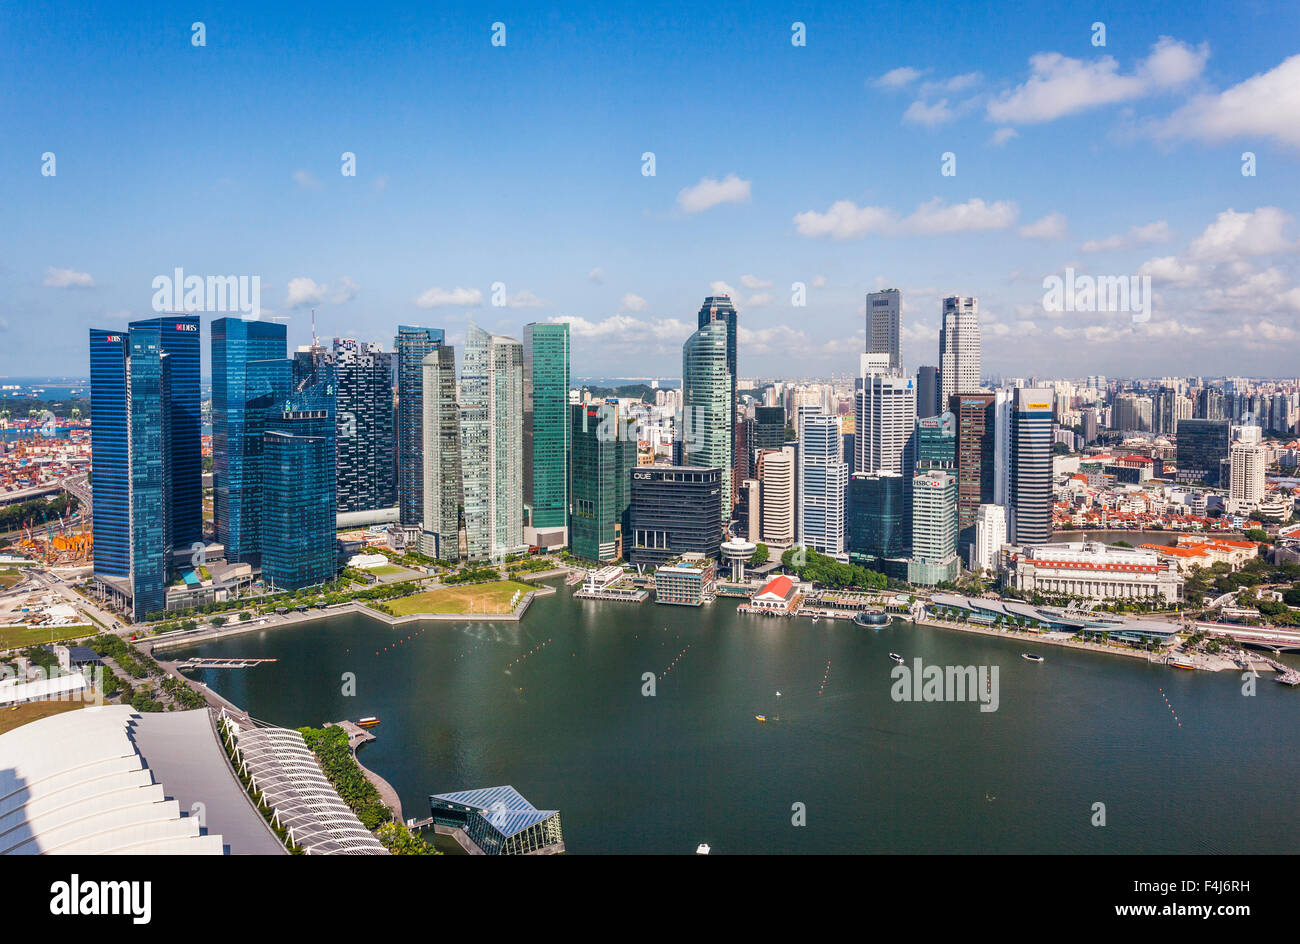 Singapore, panoramic view of Marina Bay and the Singapore CBD from the skypark of the Marina Bay Sands Hotel - Stock Image